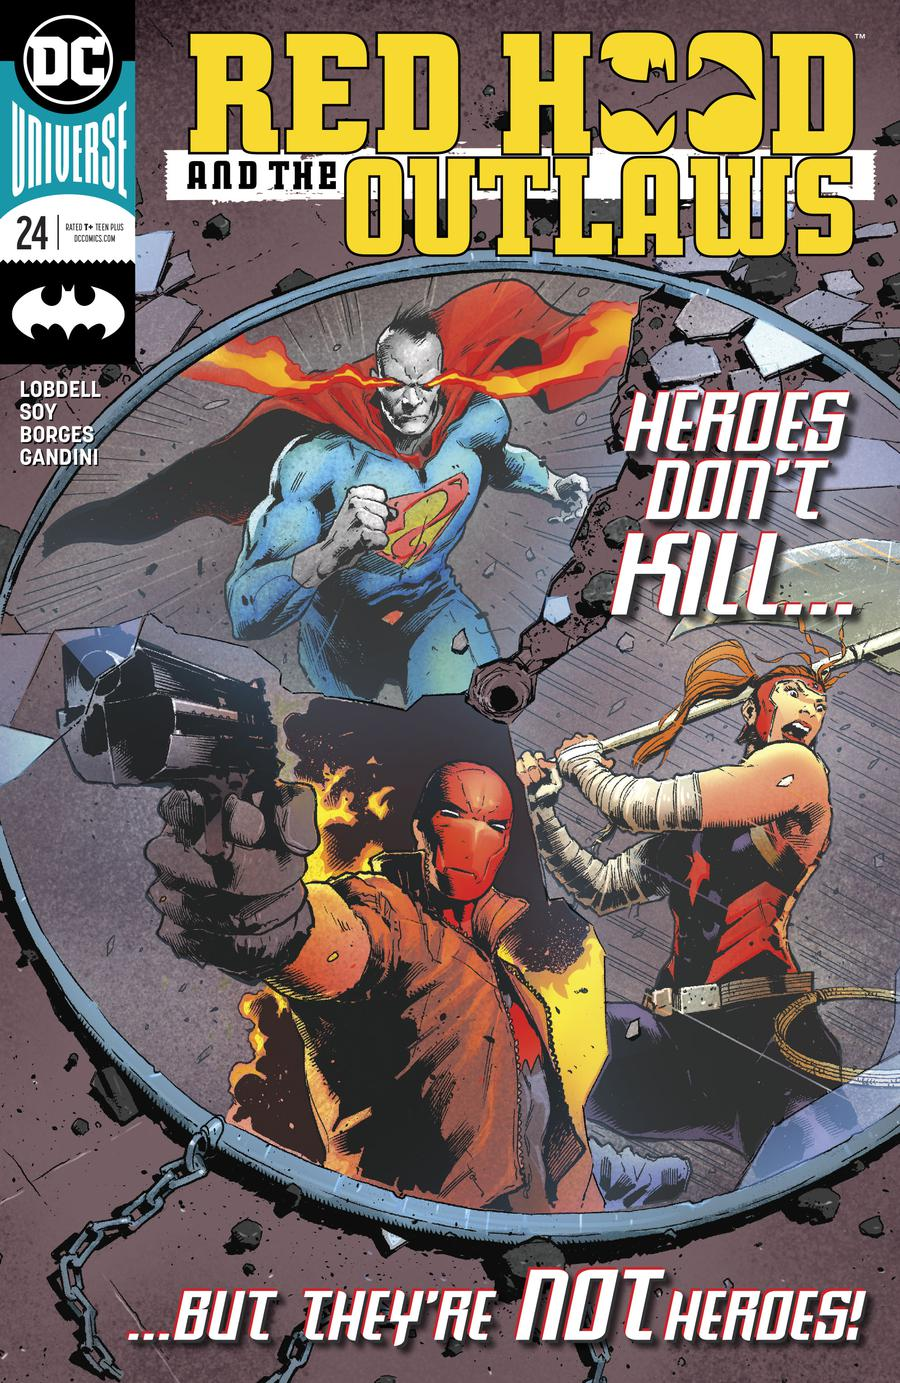 Red Hood And The Outlaws Vol 2 #24 Cover A Regular Trevor Hairsine Cover